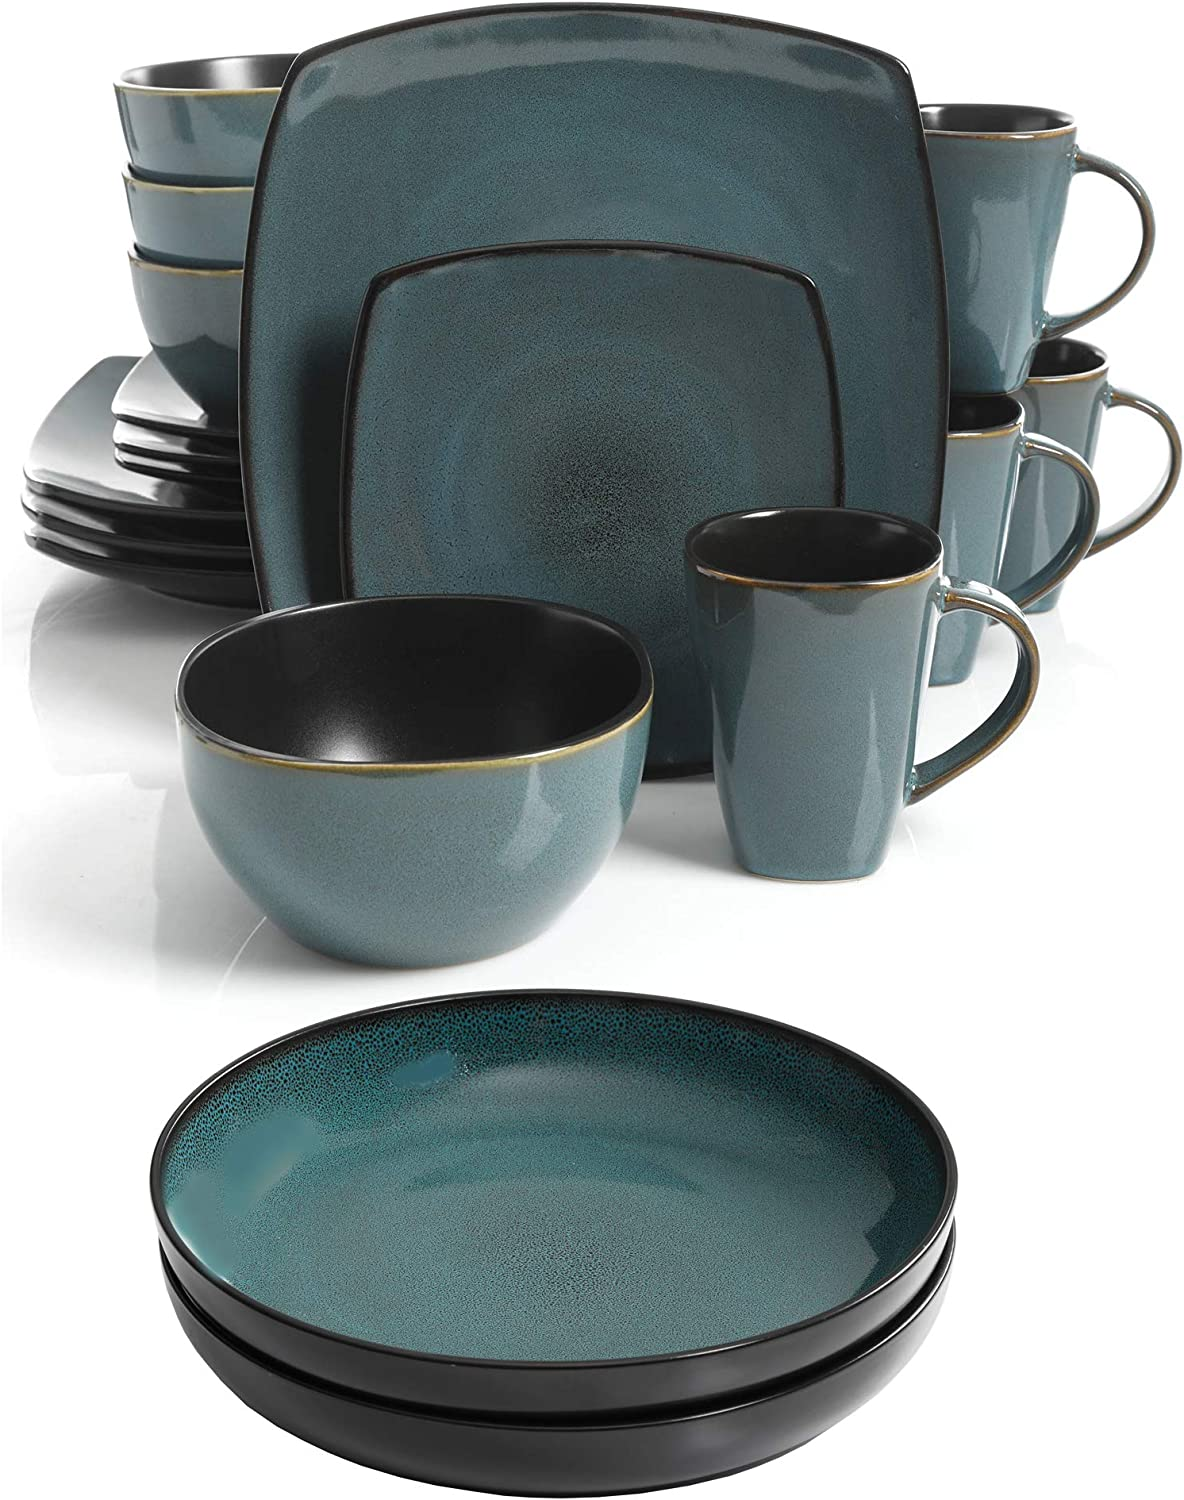 A.T. Products Corp. Soho Lounge 16 Piece Square Stoneware Dinnerware Set, Teal bundle with Soho Lounge 8.86 Inch Dinner Bowls, Teal, Set of 2